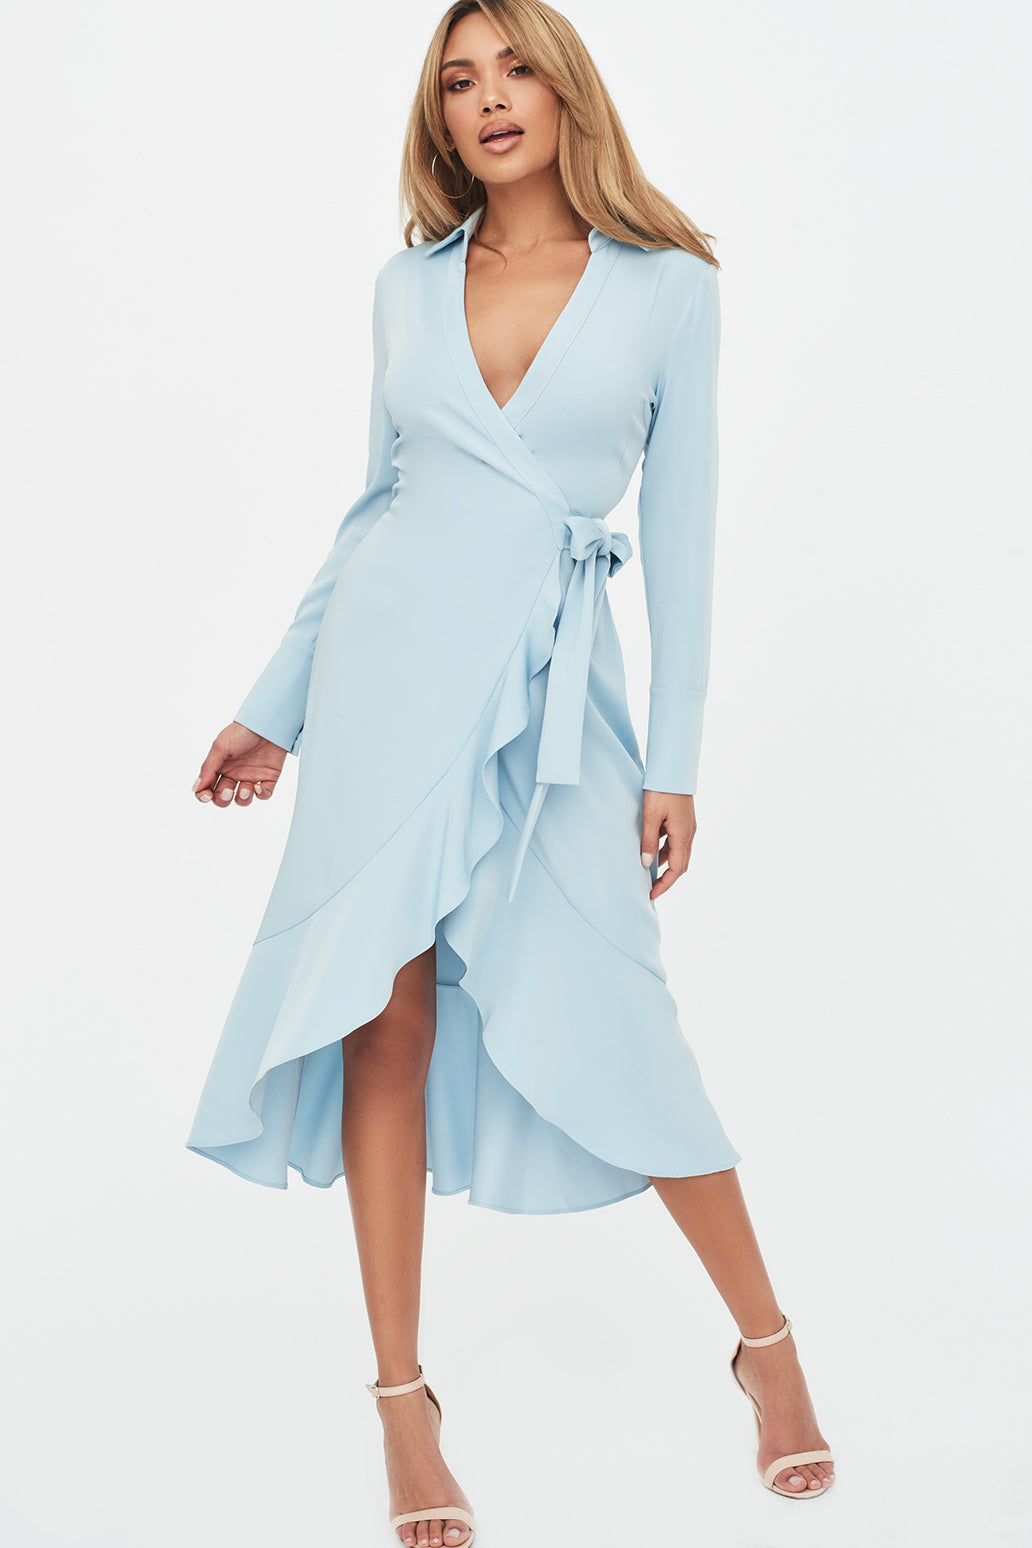 Lavish Alice Frill Hem Wrap Front Shirt Dress in Dusty Blue